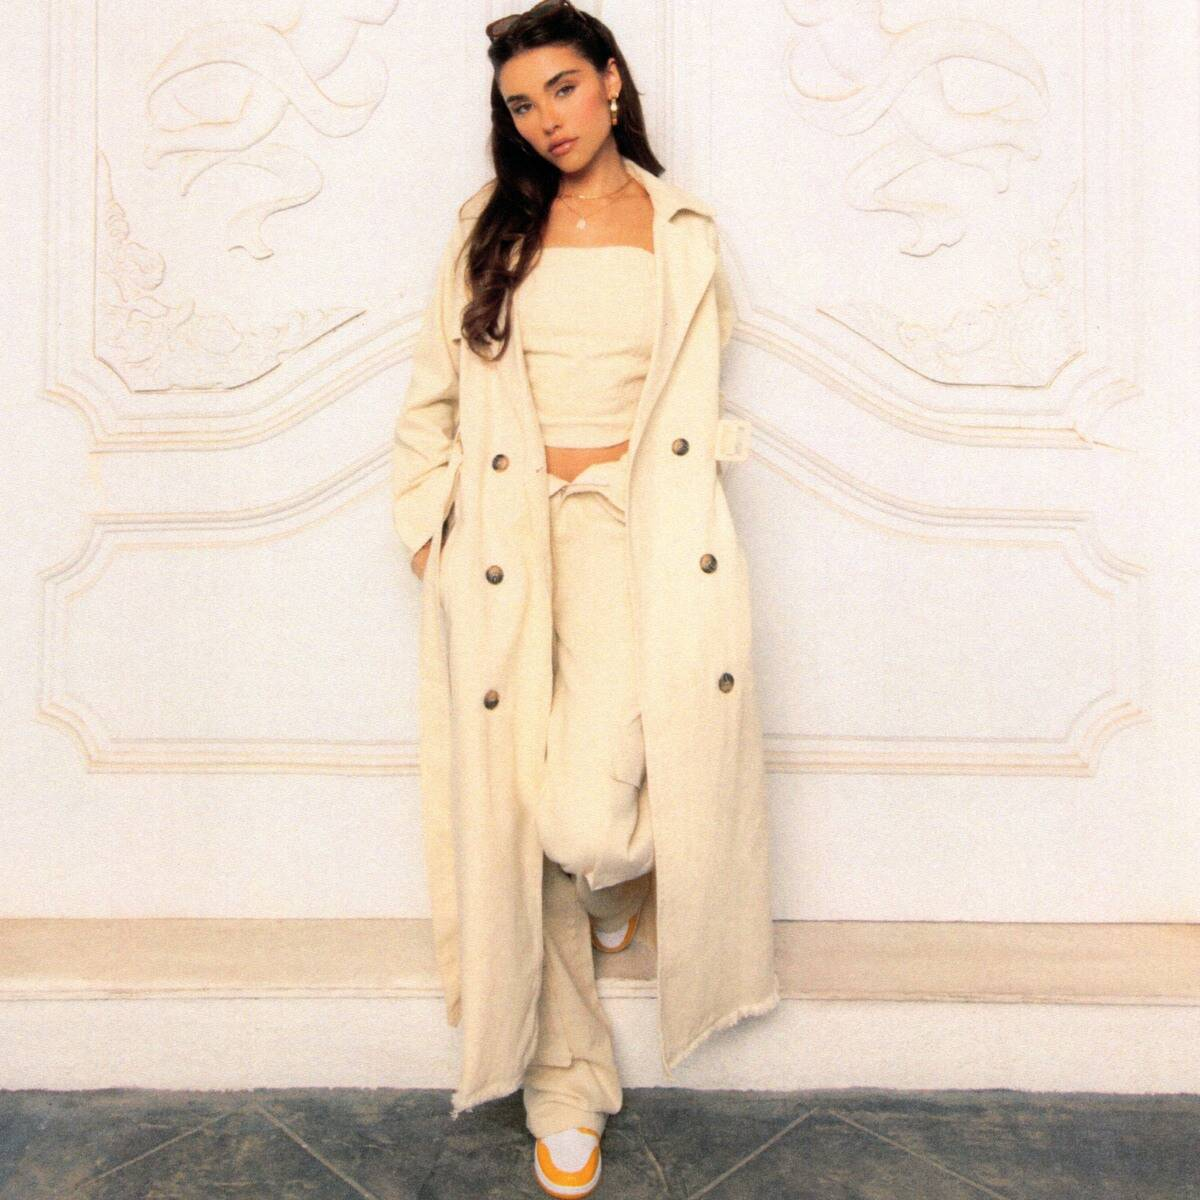 Madison Beer Boohoo 2021 The Glitter and Gold 'Sustainable fashion is at a turning point. This is what you can do to help'